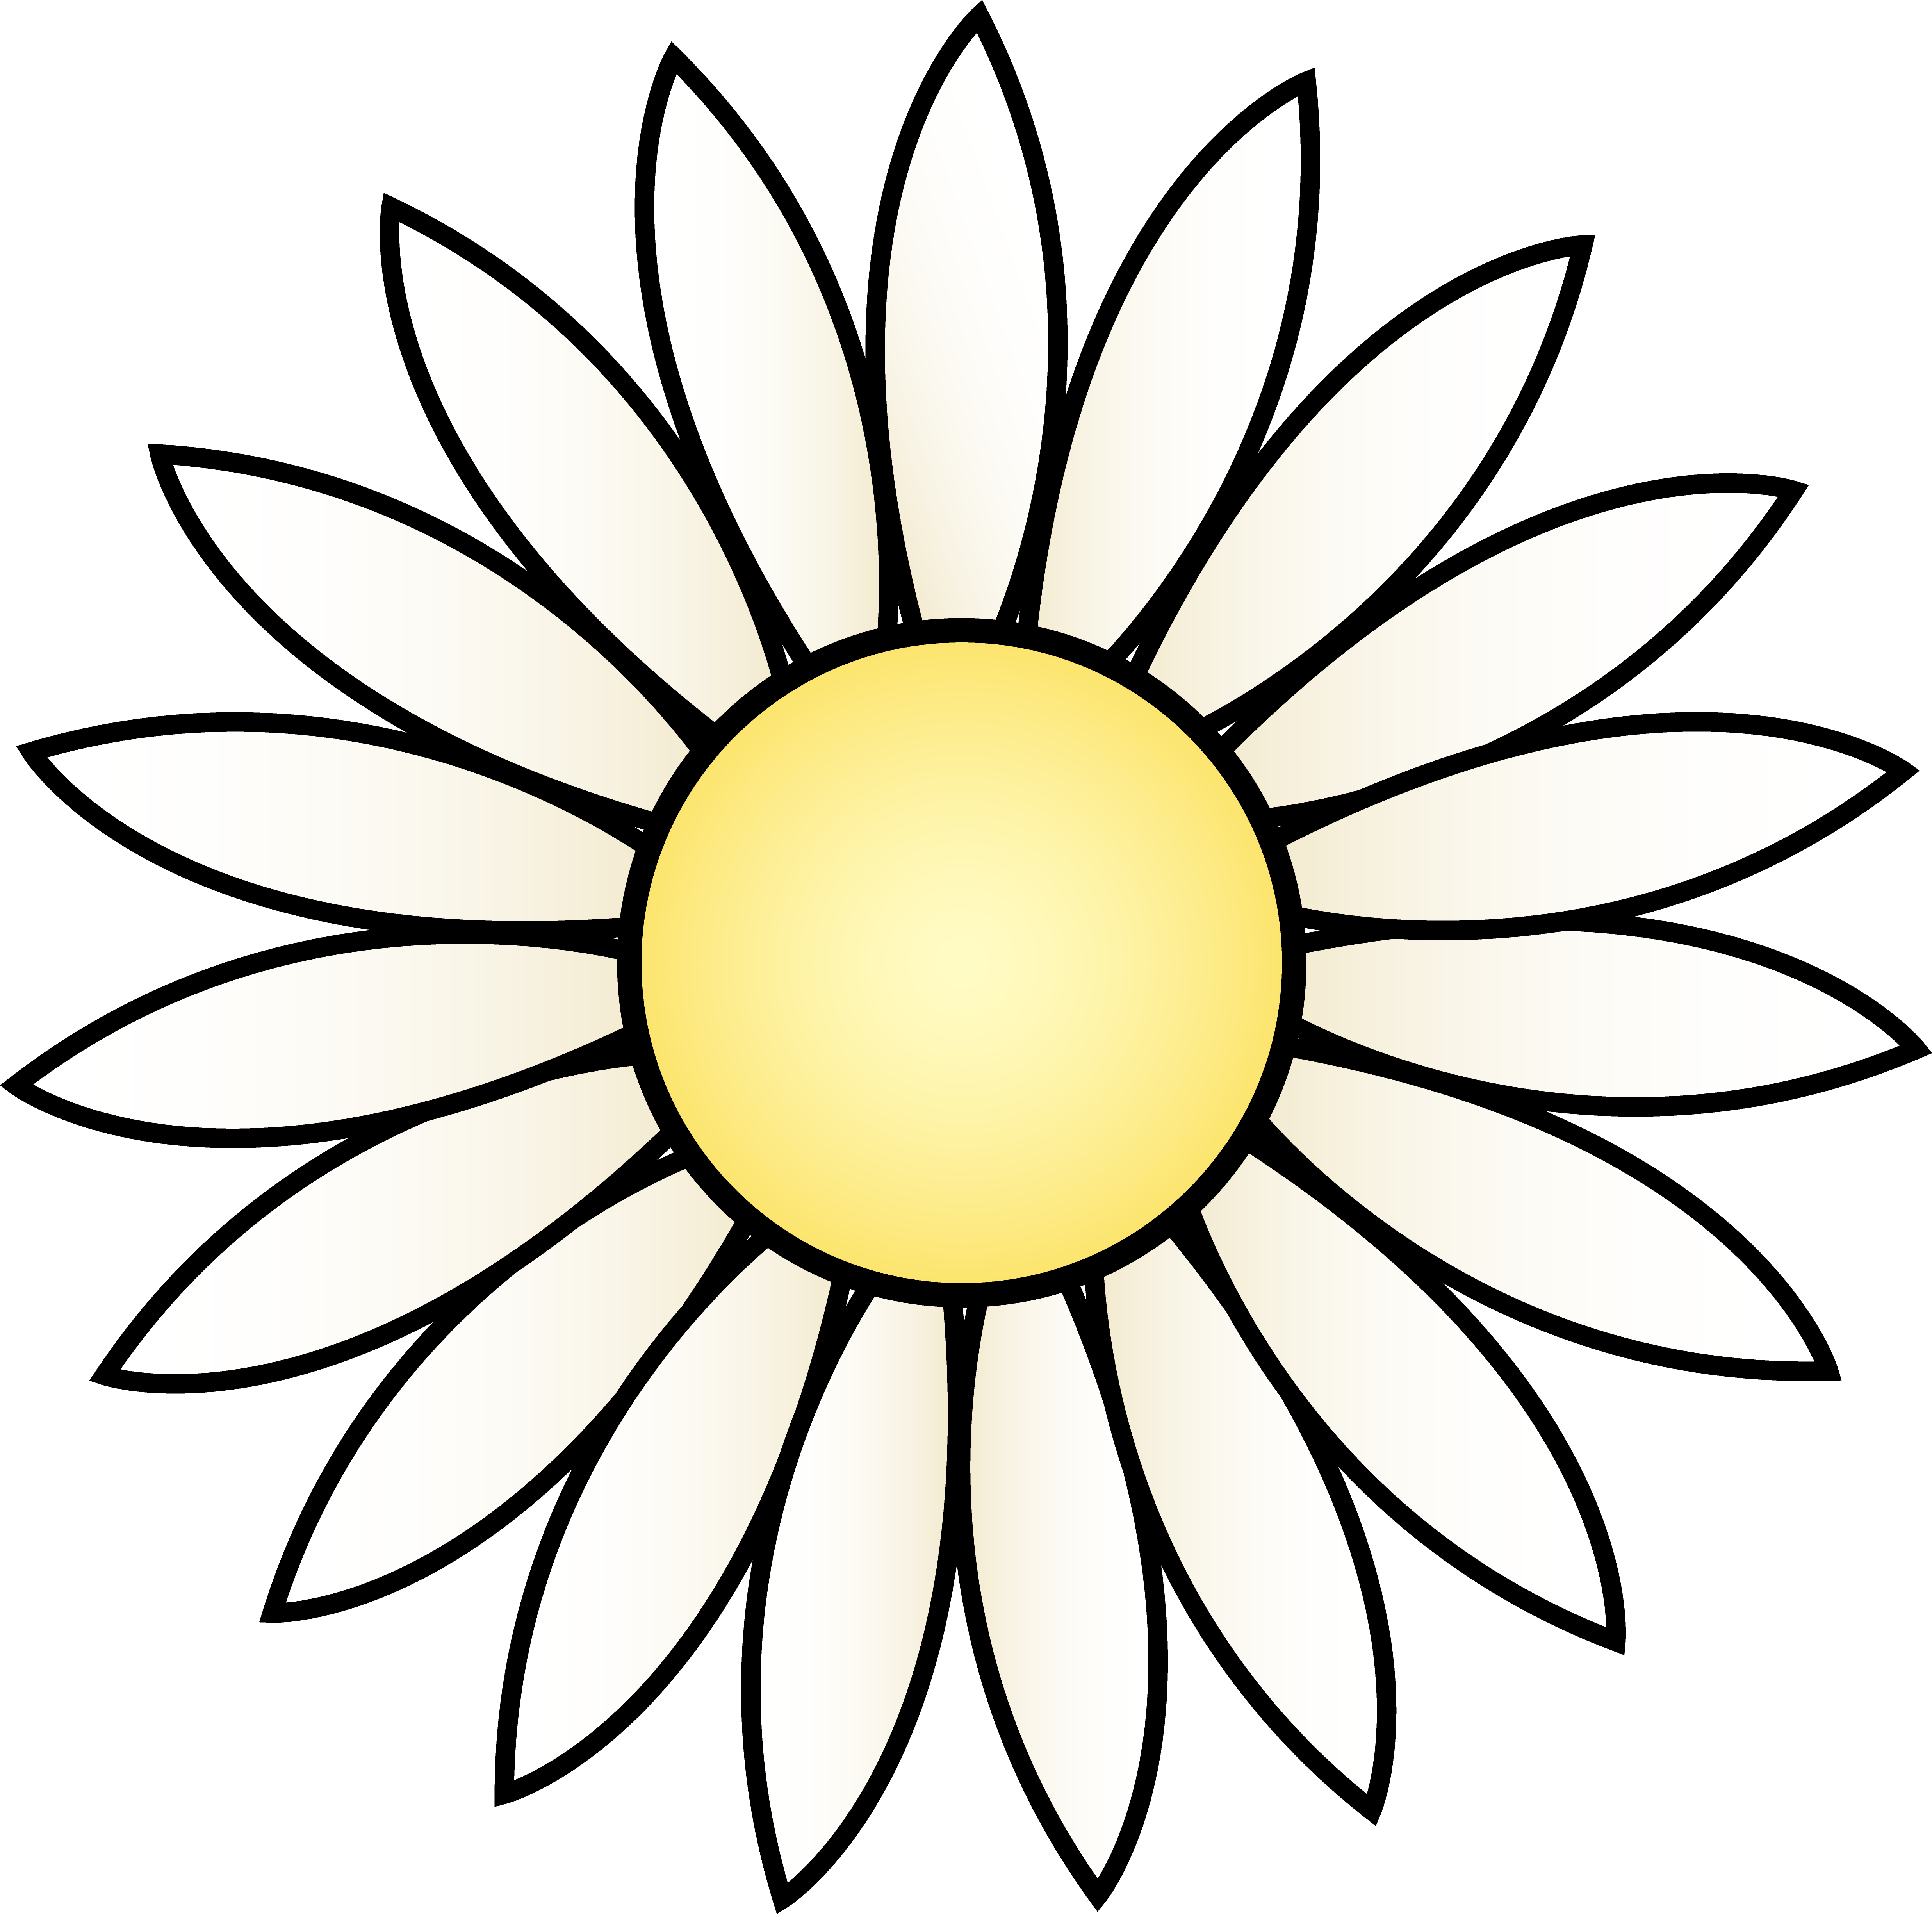 Daisy Templates - ClipArt Best